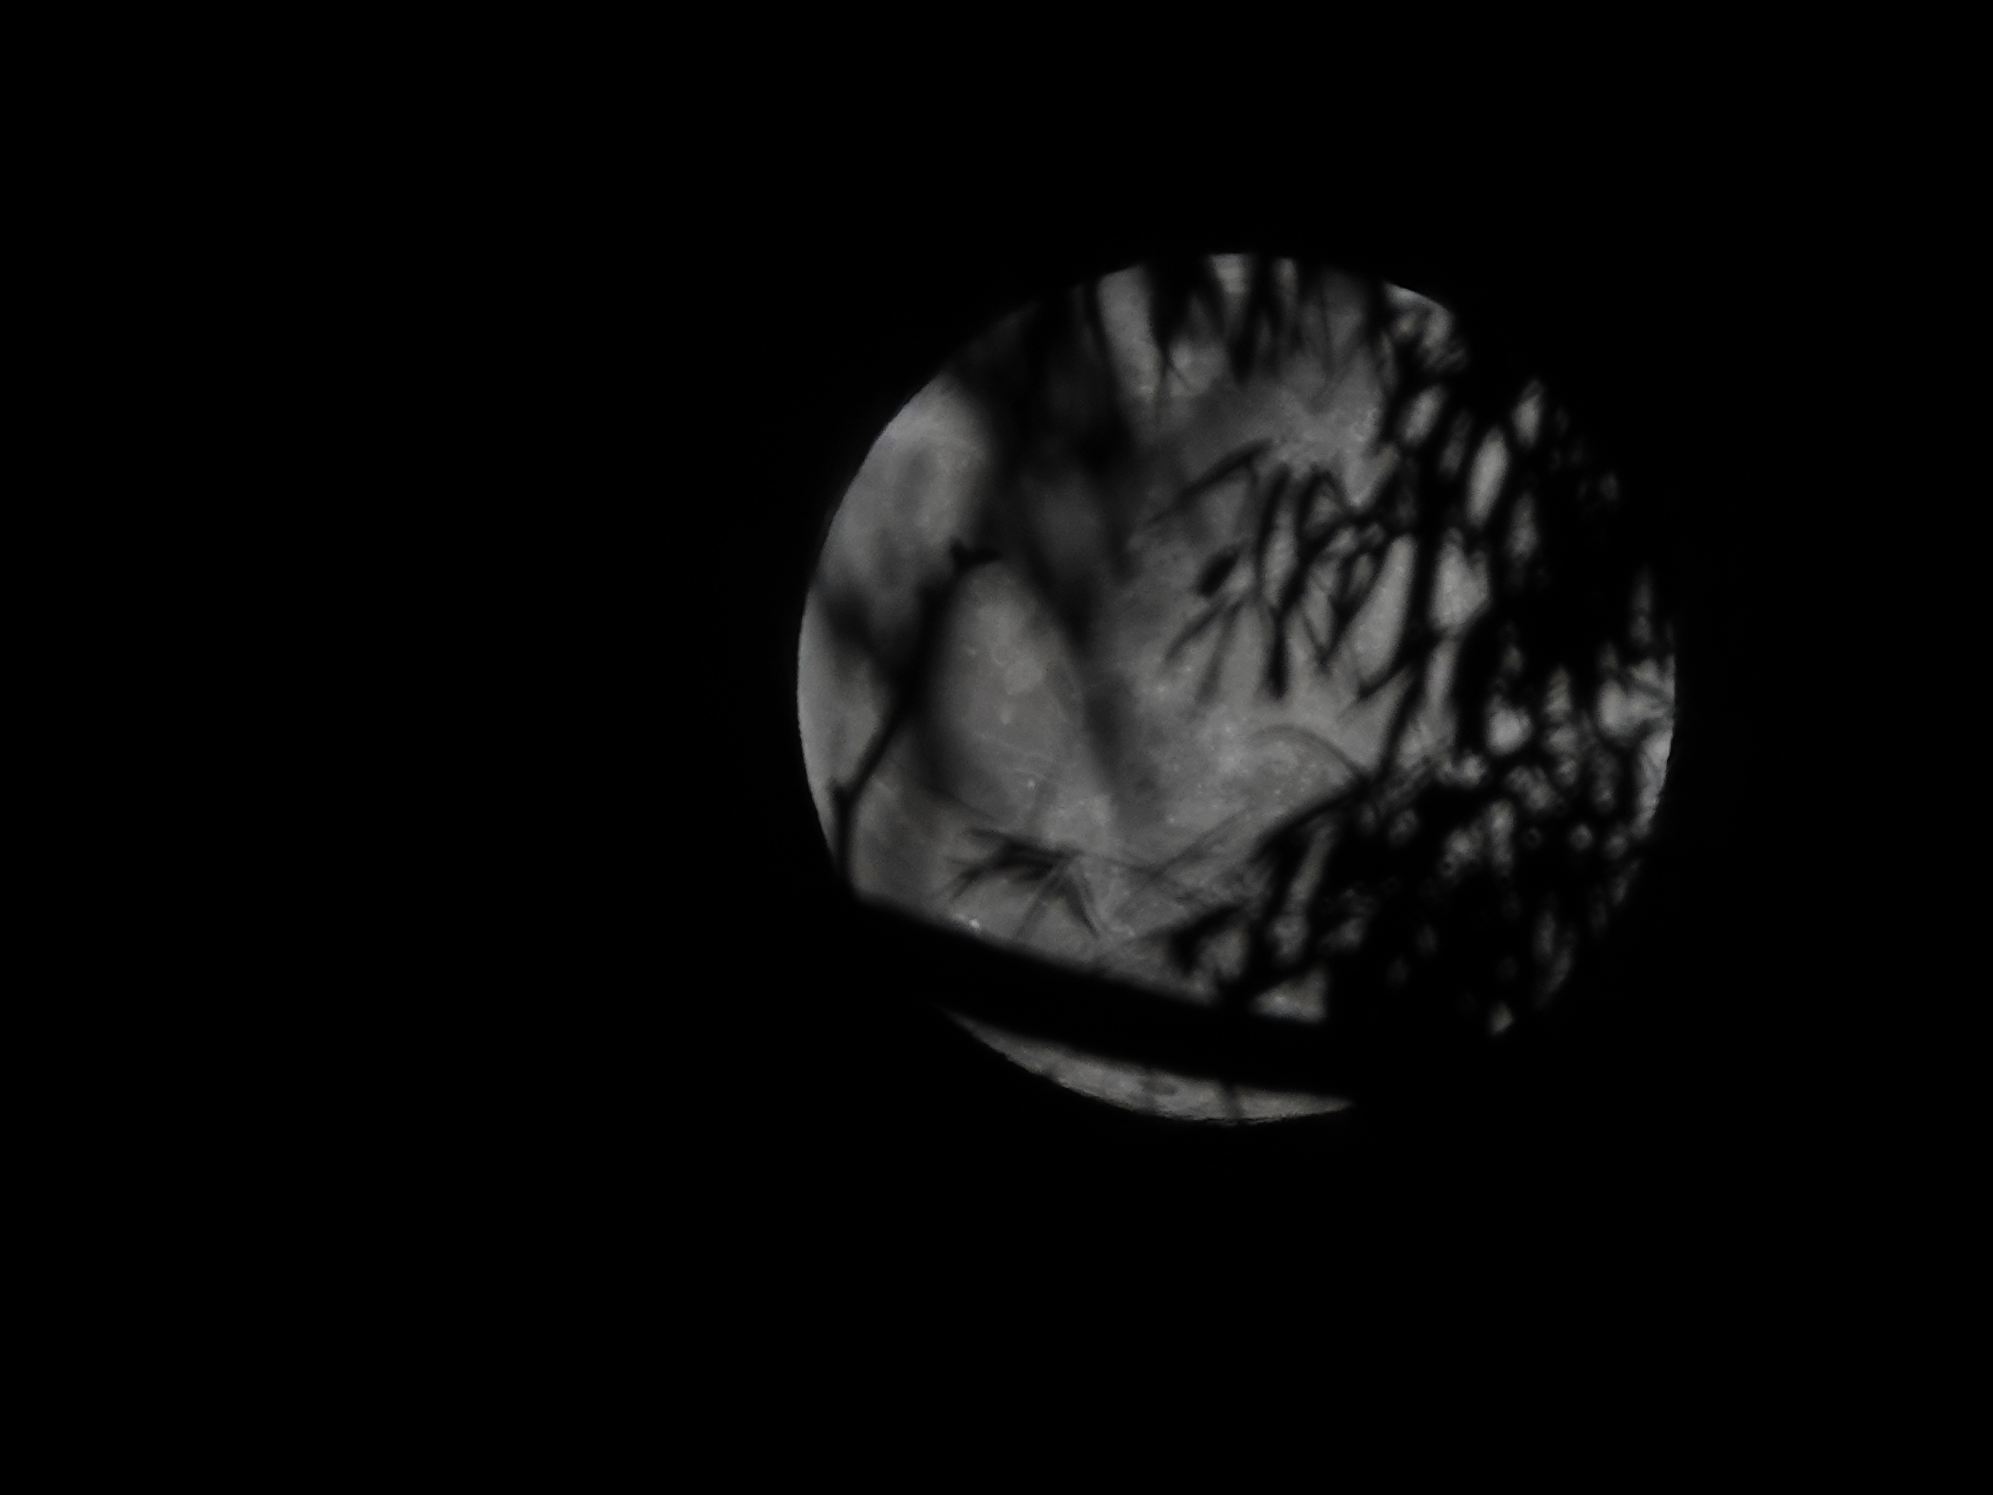 Monday's supermoon shines through tree branches shortly after sunset in Camarillo. Overnight, the moon will be at its closest point to Earth at about 221,000 miles.